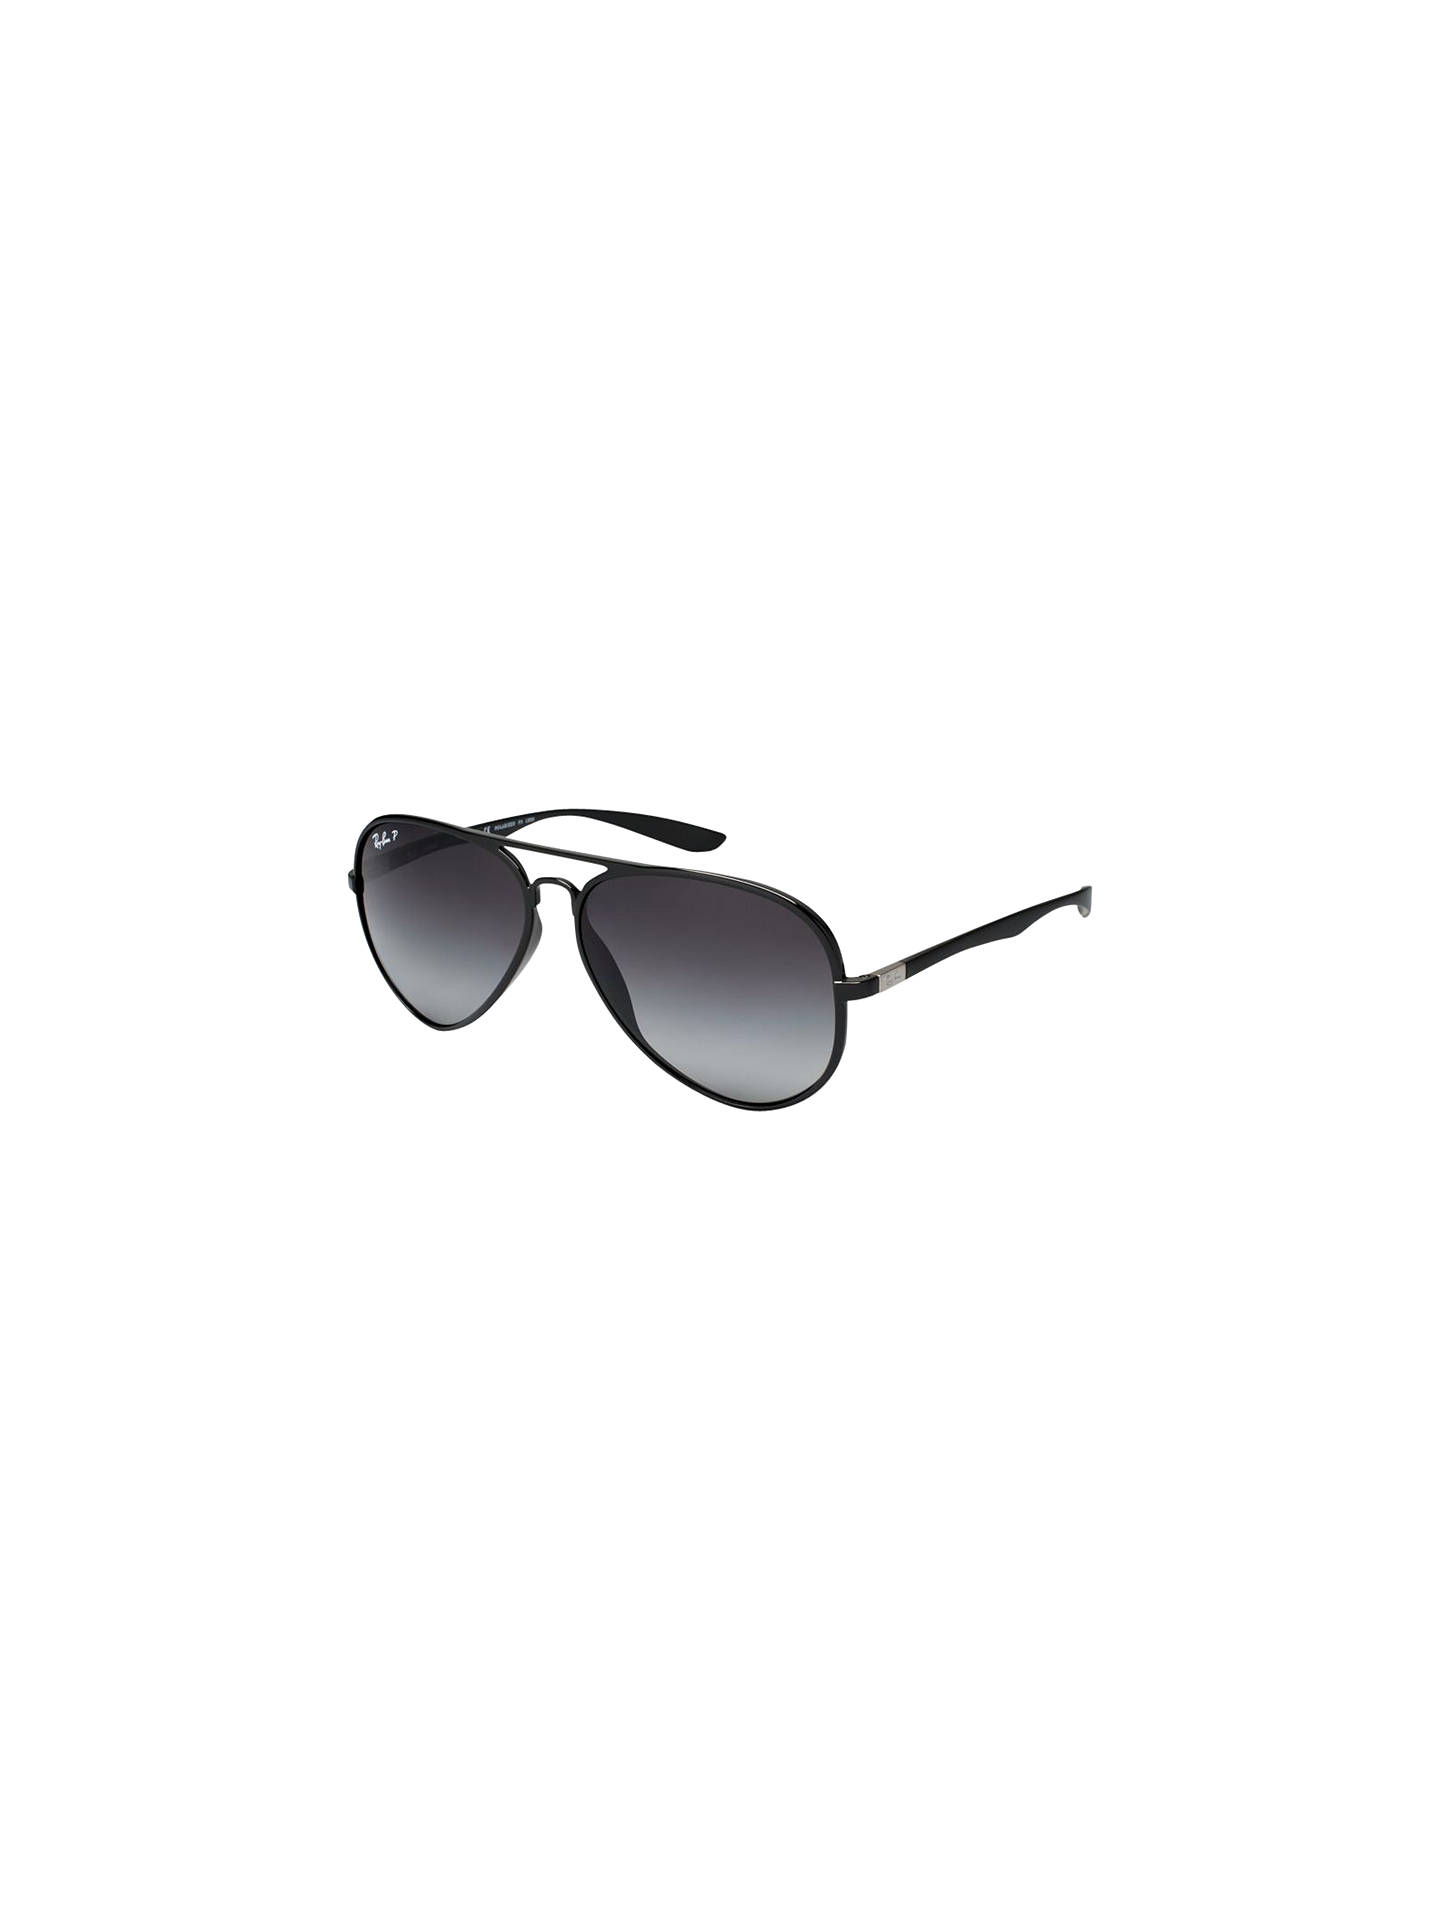 963c96419a BuyRay-Ban RB4180 59 Aviator Liteforce Sunglasses